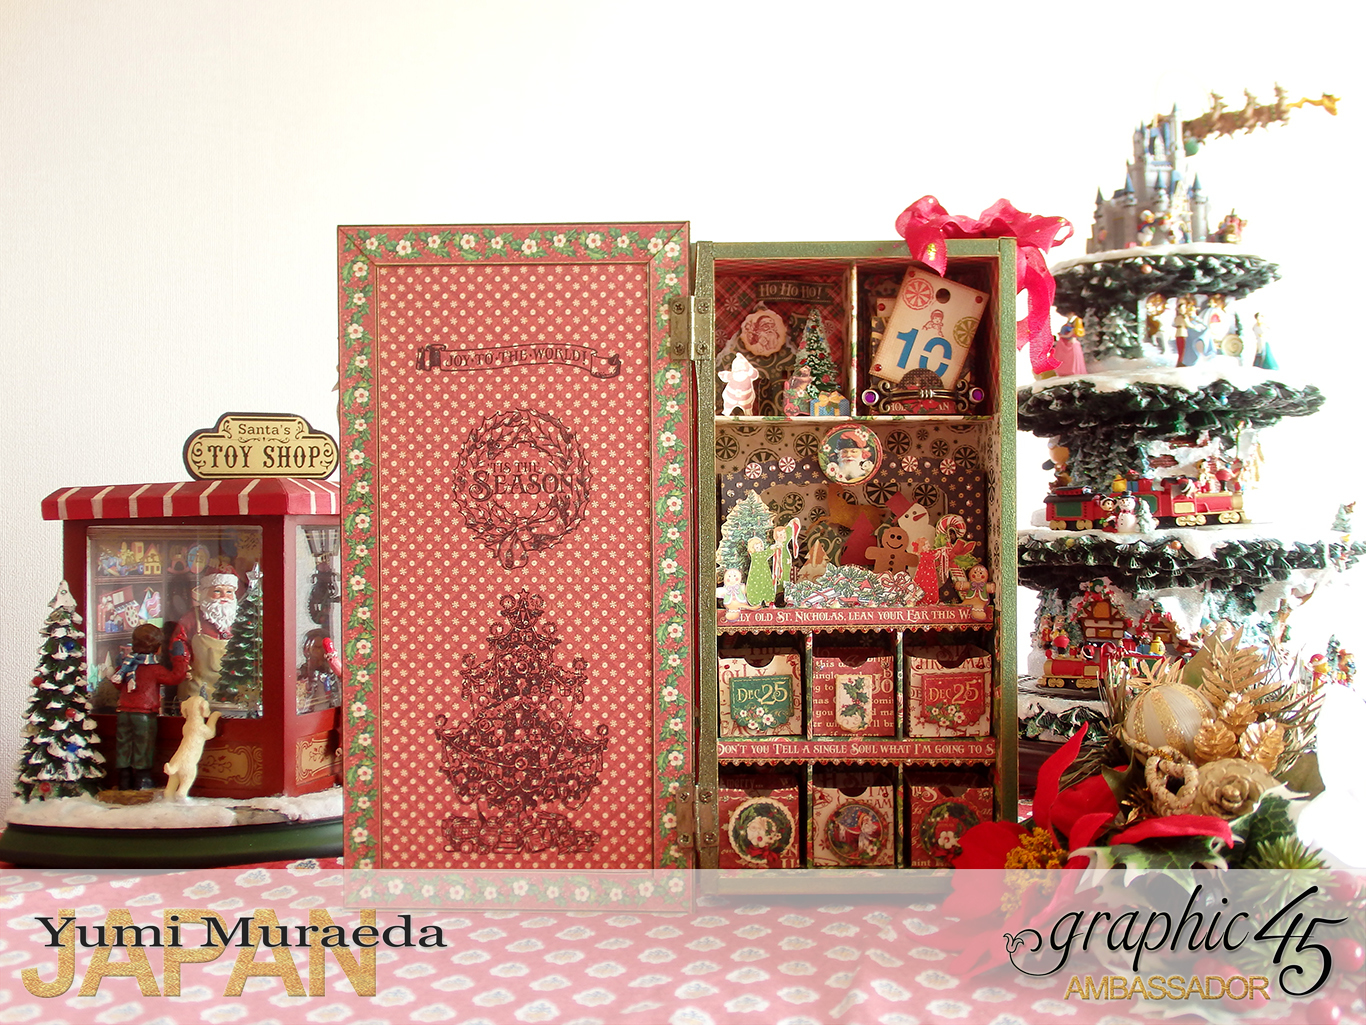 yuyu3xmasboxdesignbyyumimuraedaproductbygraphic45photo1.jpg